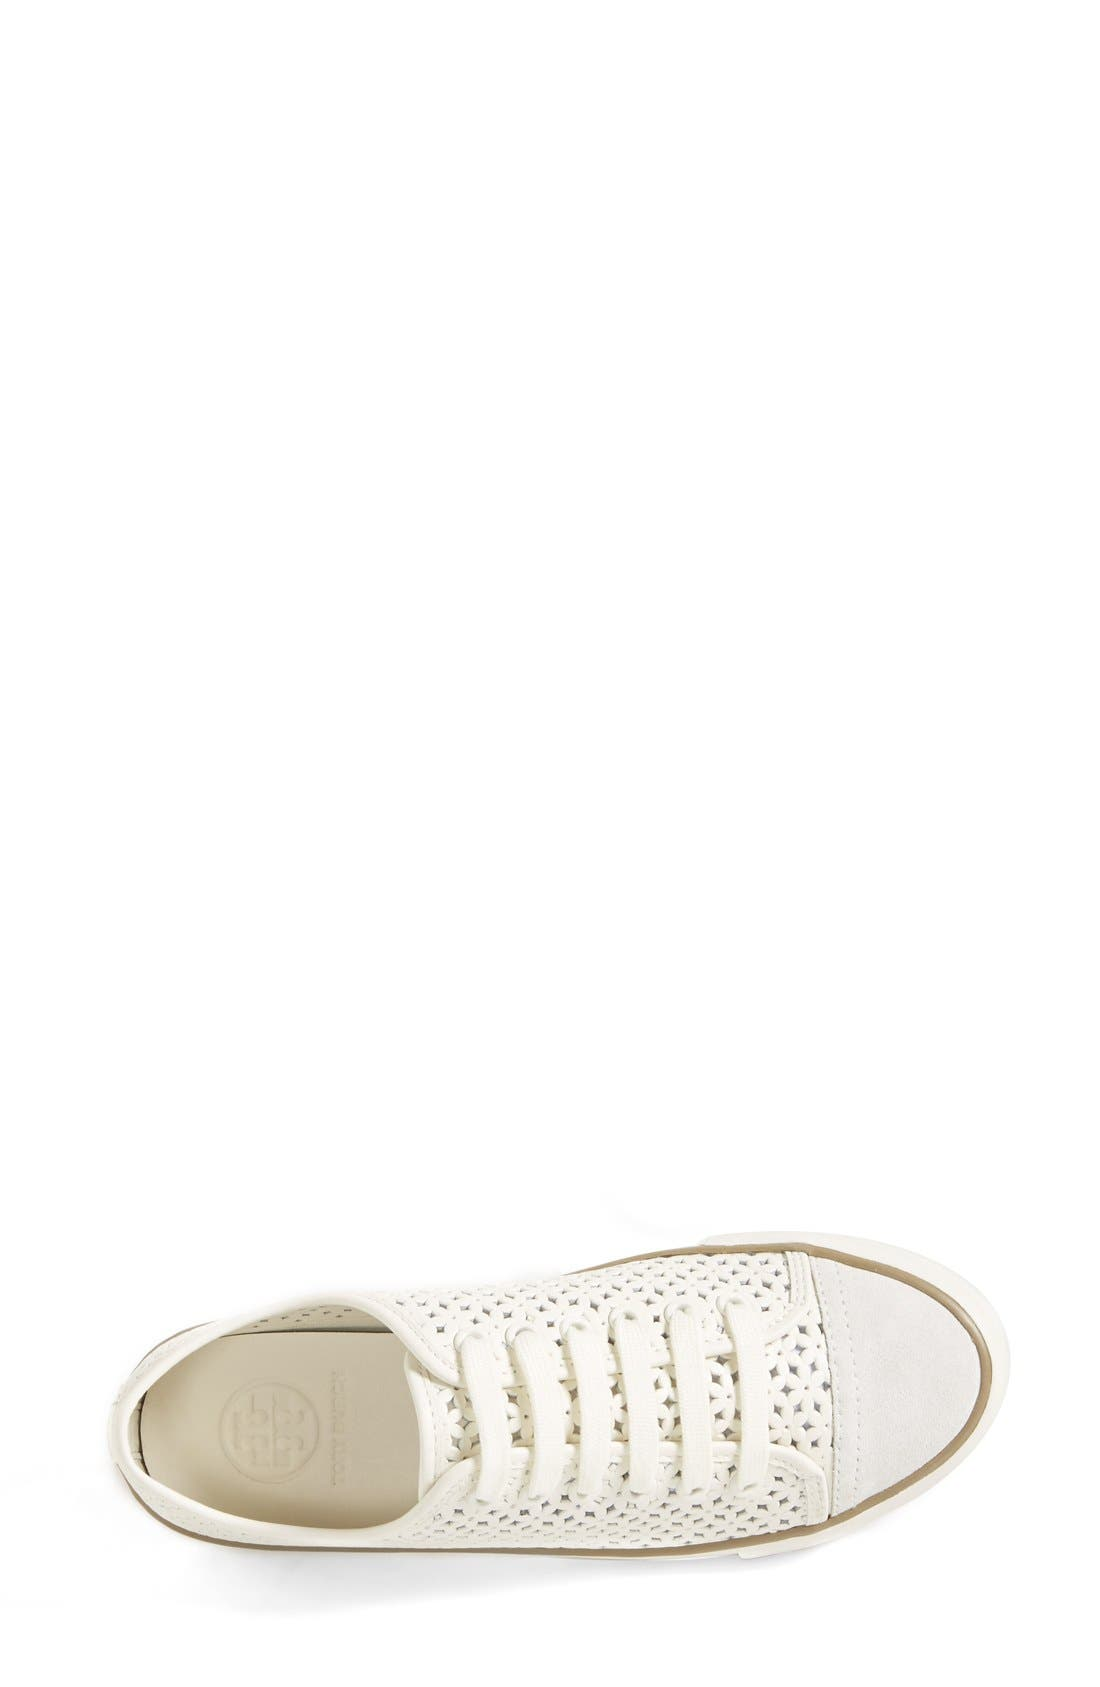 'Daisy' Perforated Sneaker,                             Alternate thumbnail 3, color,                             104